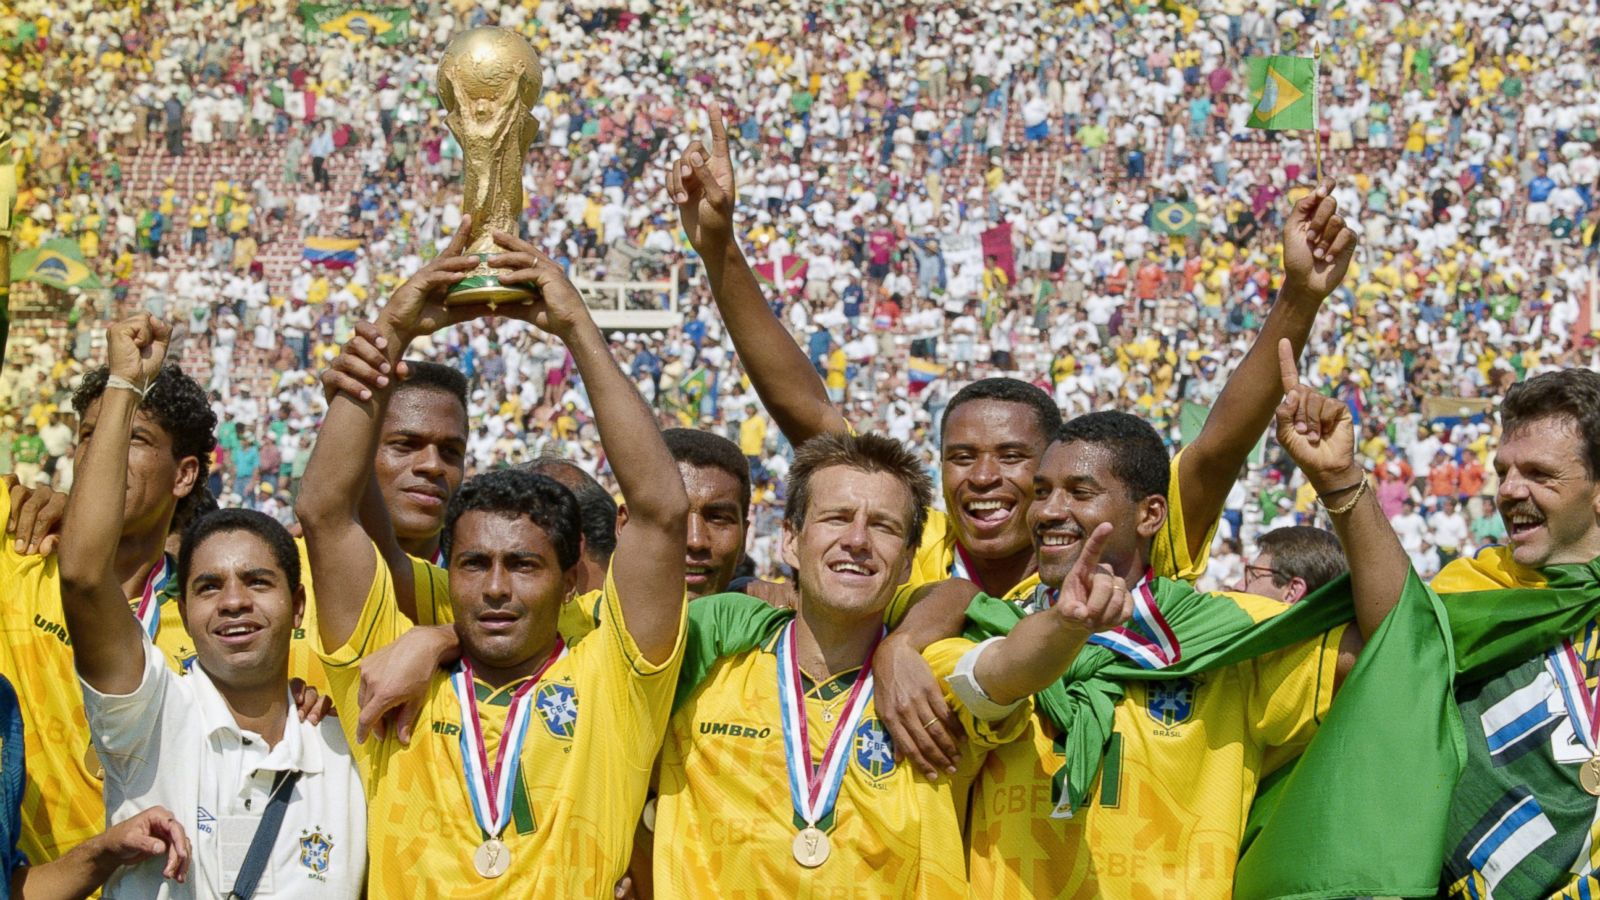 Brazilian soccer national team holding the World Cup. Photo: Ben Radford \ Getty Images